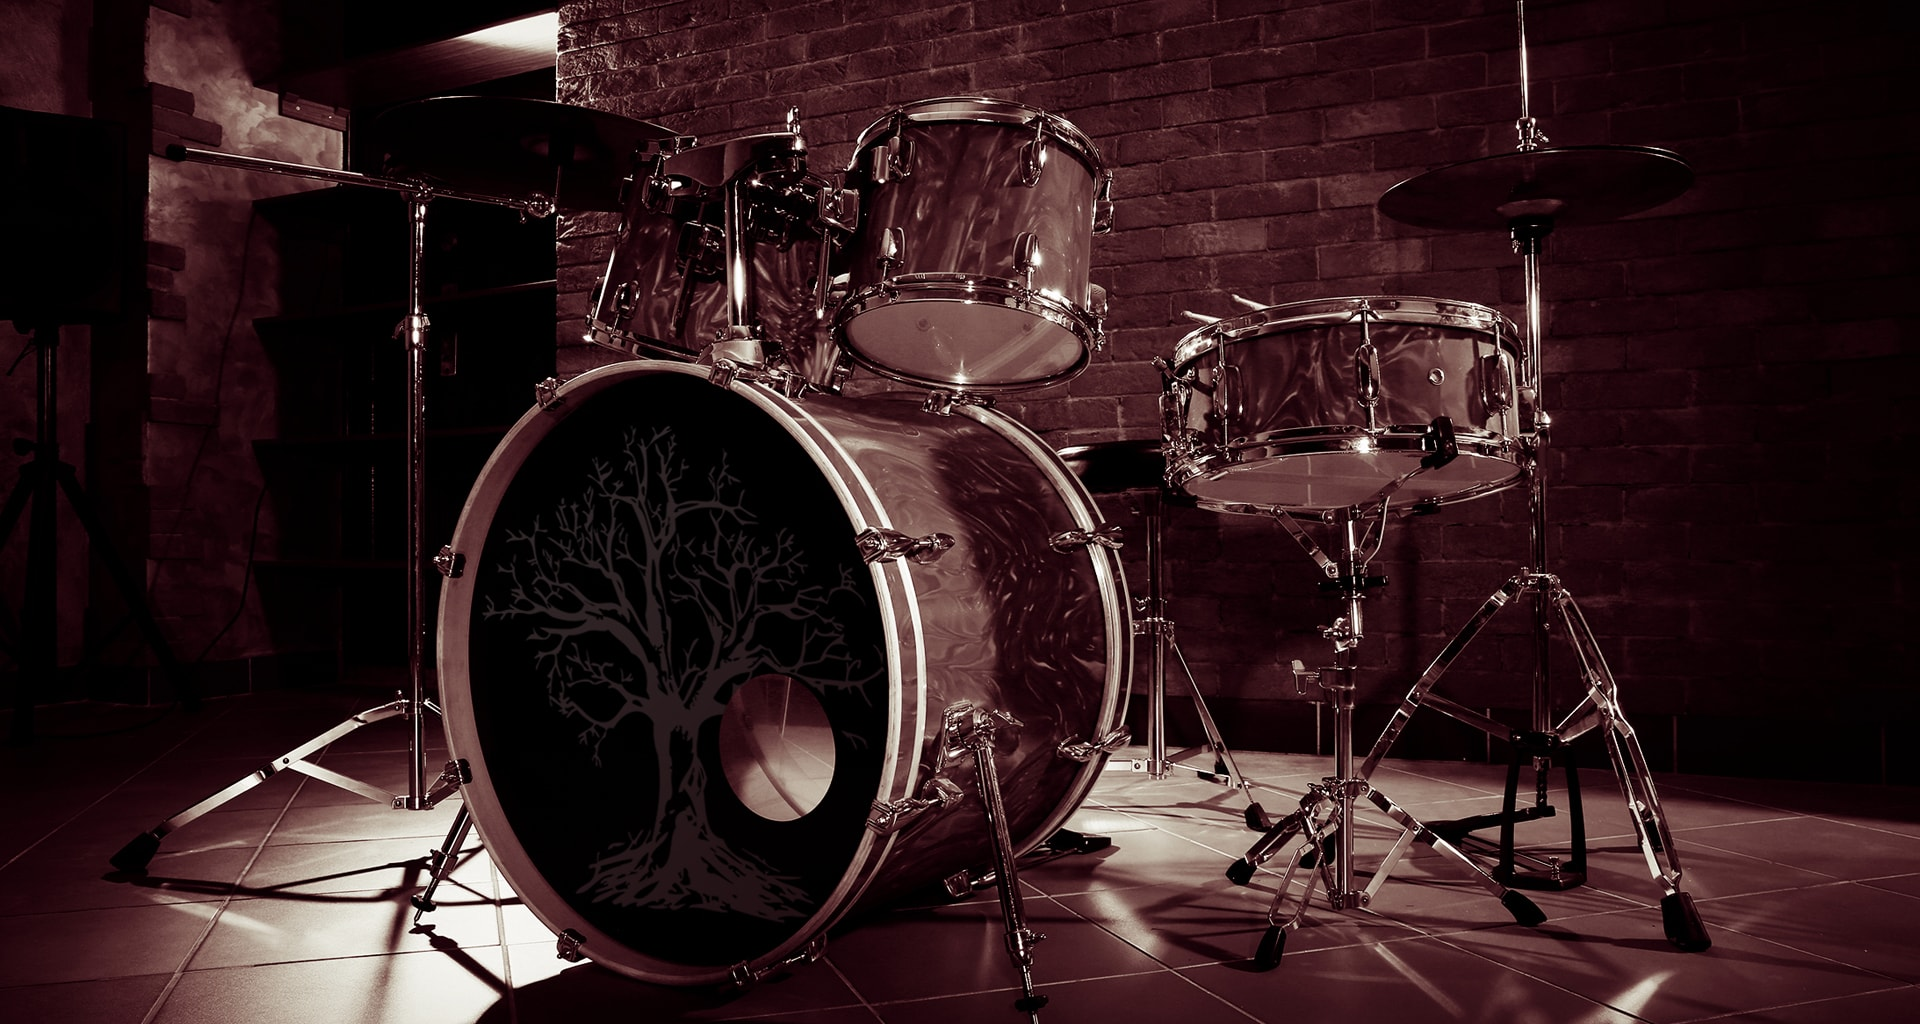 CUSTOM DRUM DECALS